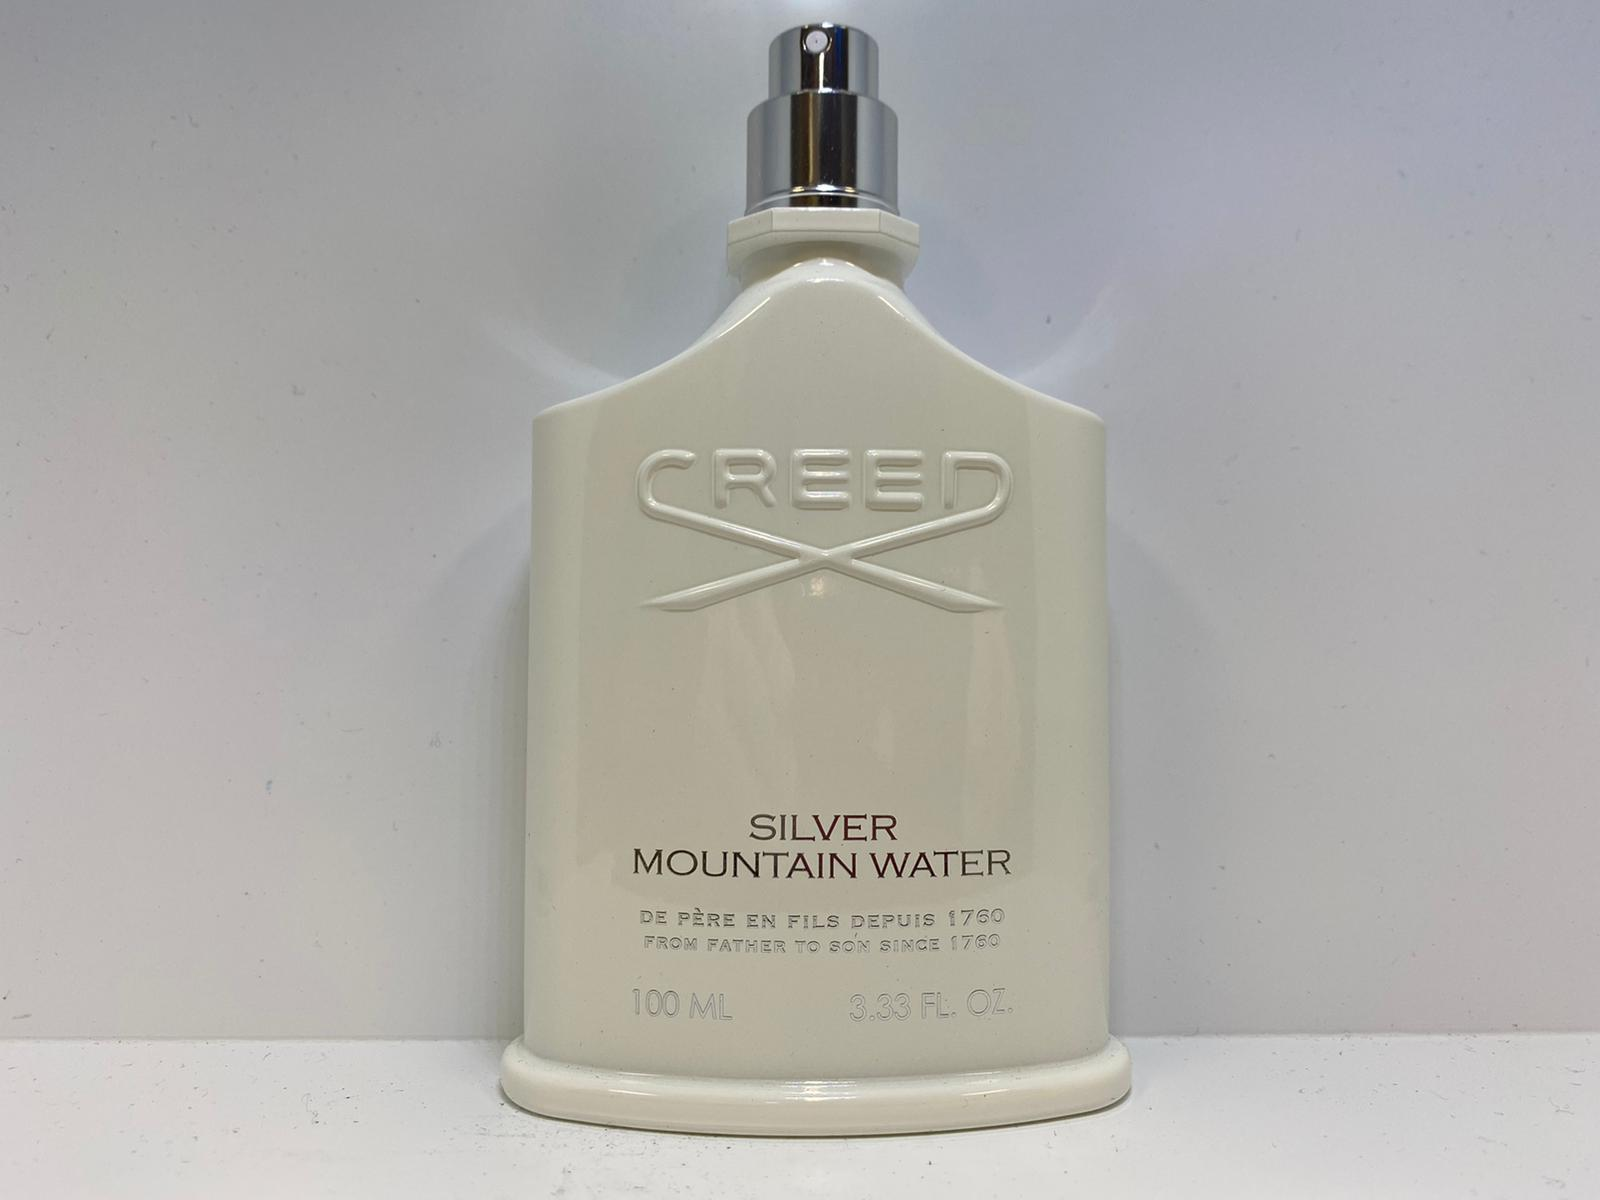 Creed Silver Mountain Water 100ml TESTER - CURBSIDE PICKUP ONLY